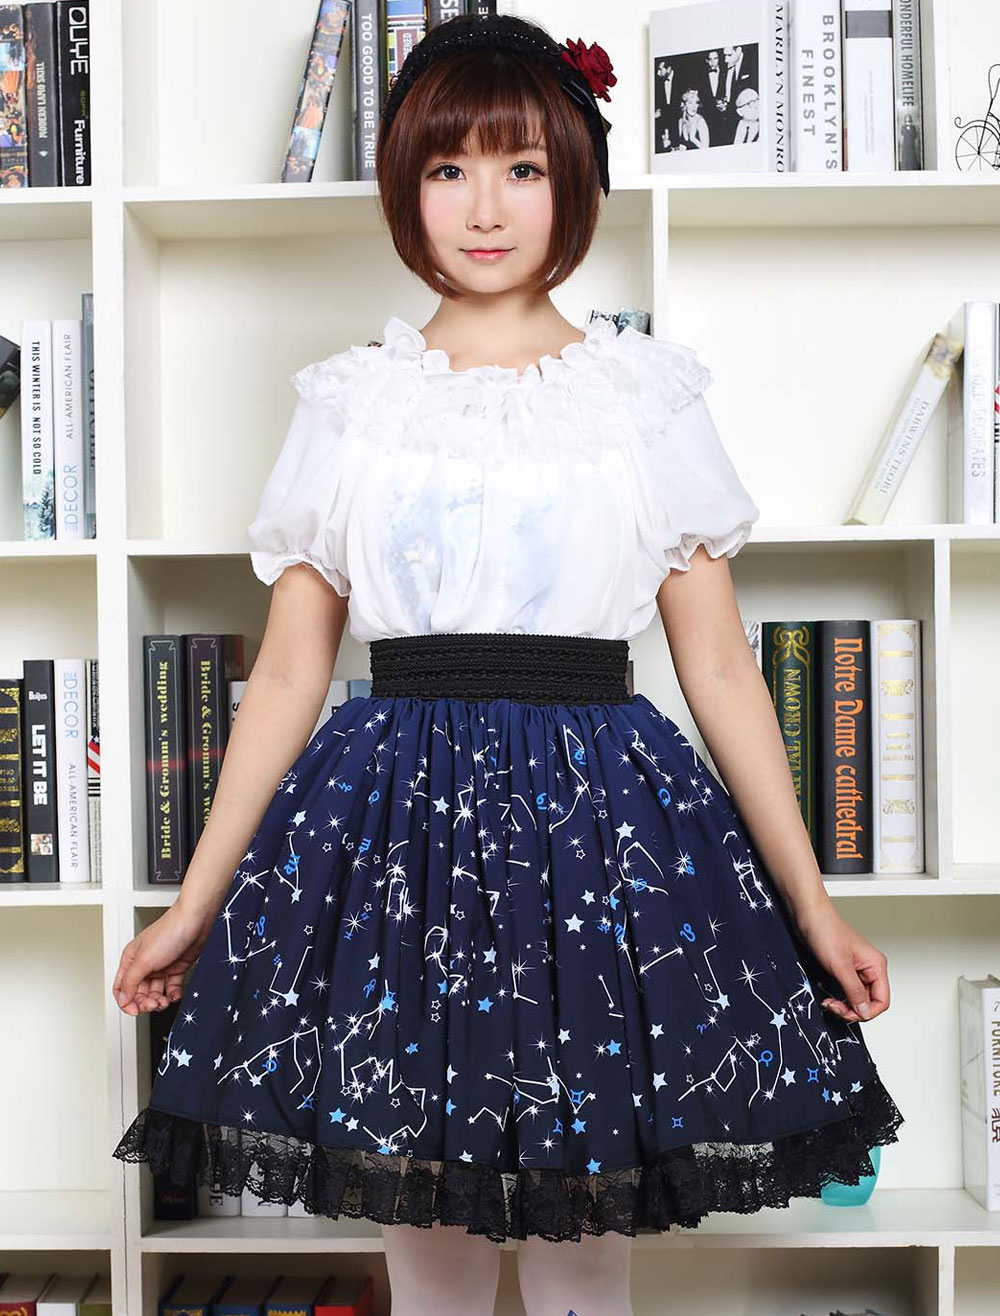 Buy Blue Lolita Dress Sweet Constellation Printed Lolita Skirt With Black Lace Trim for $35.99 in Milanoo store